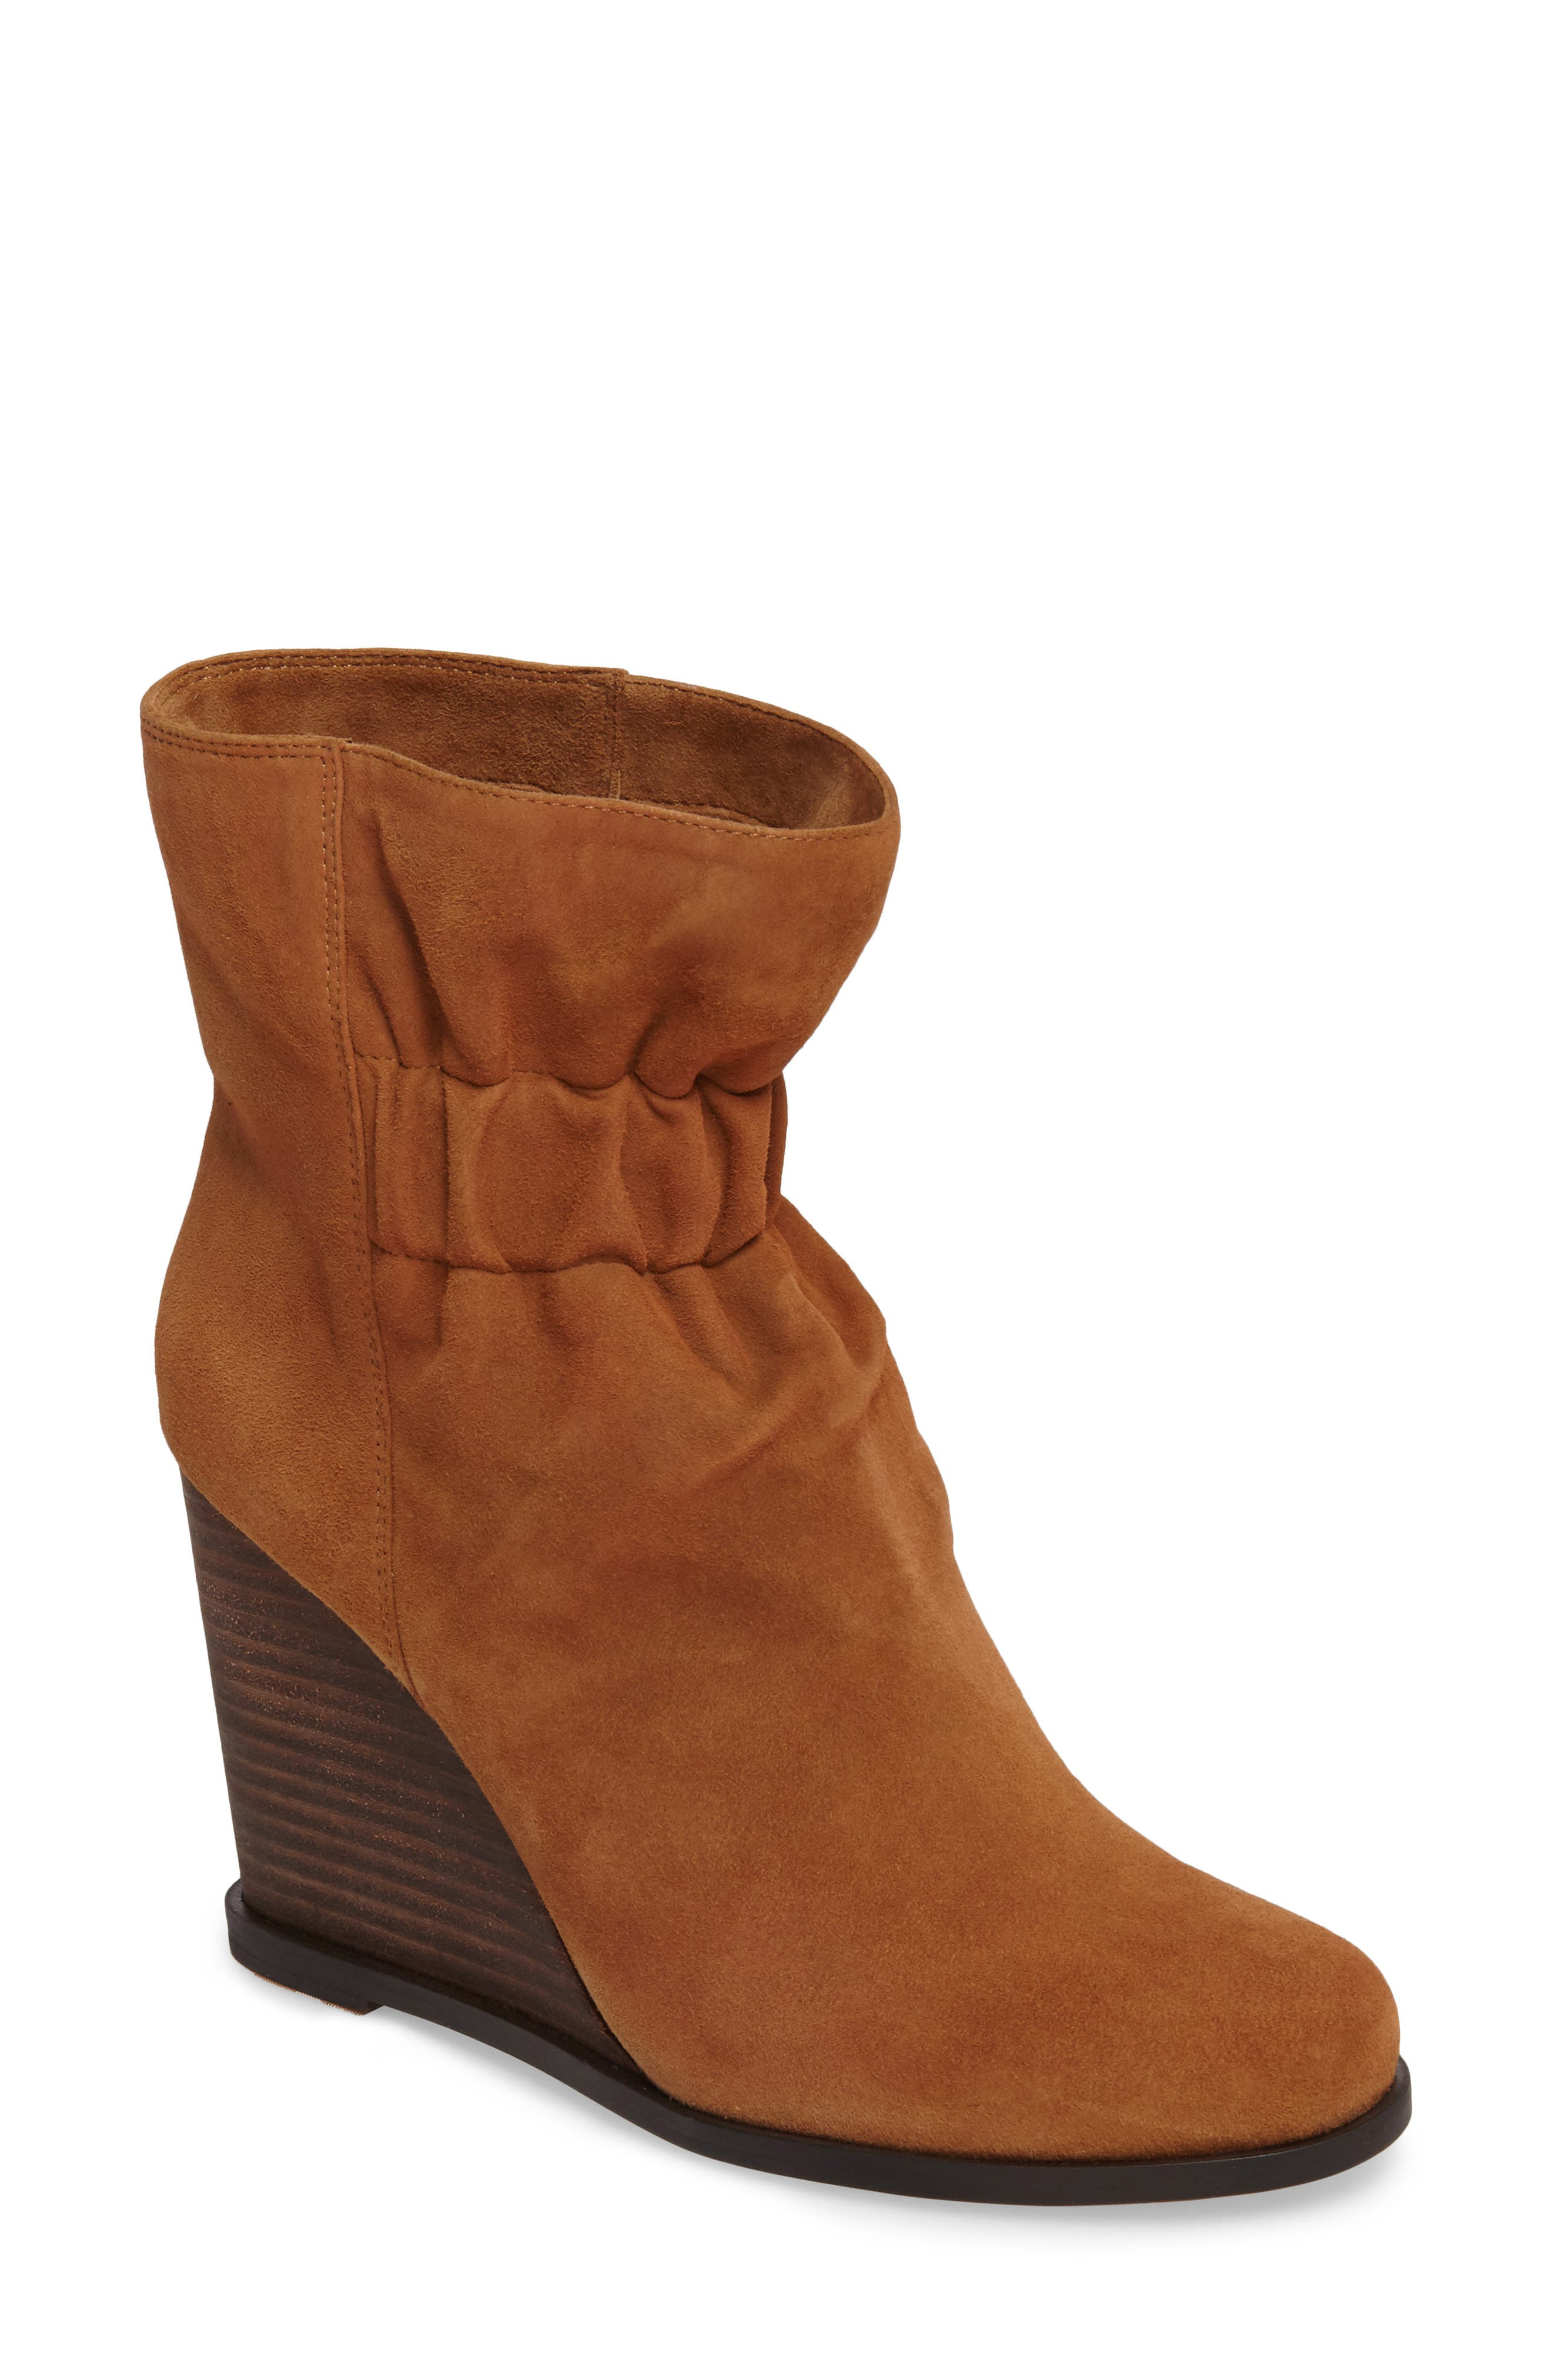 Main Image - Splendid Rebecca Wedge Bootie (Women)